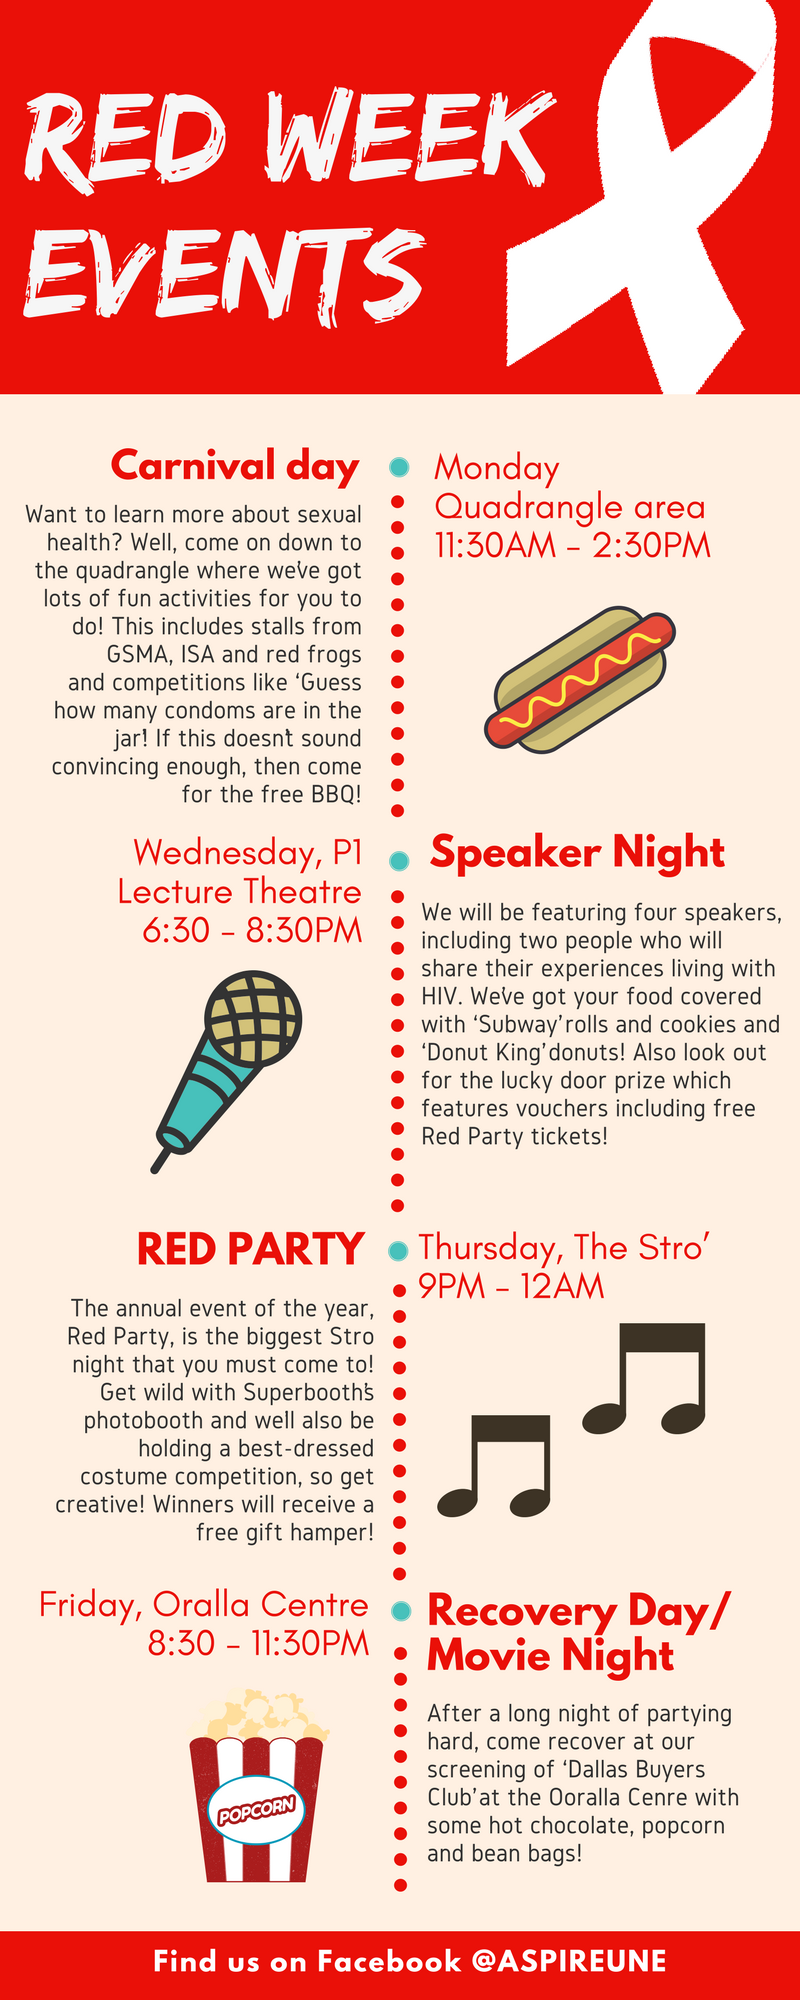 red week events 3.png